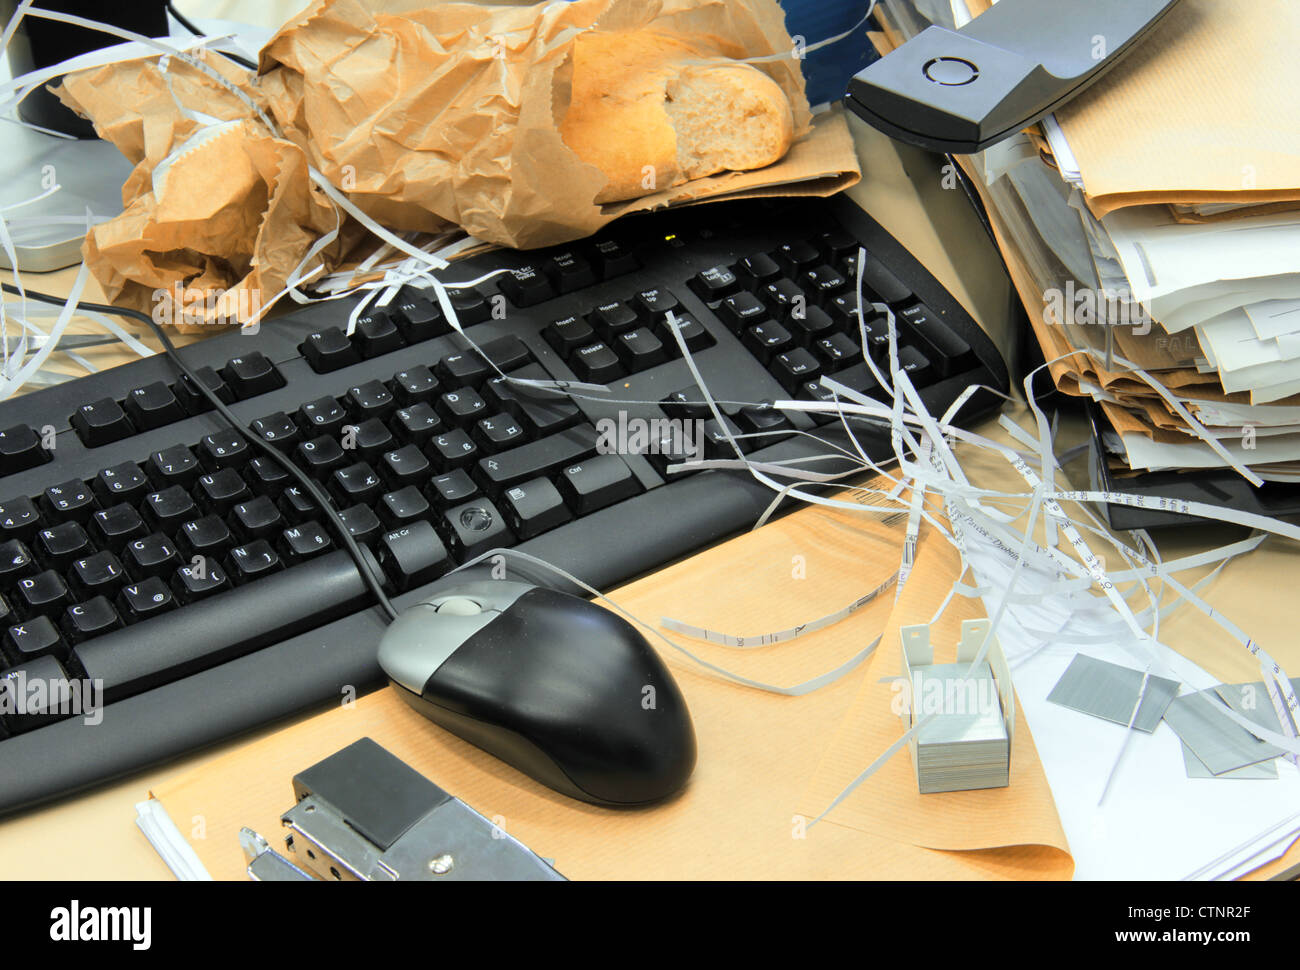 Mess in the office. - Stock Image